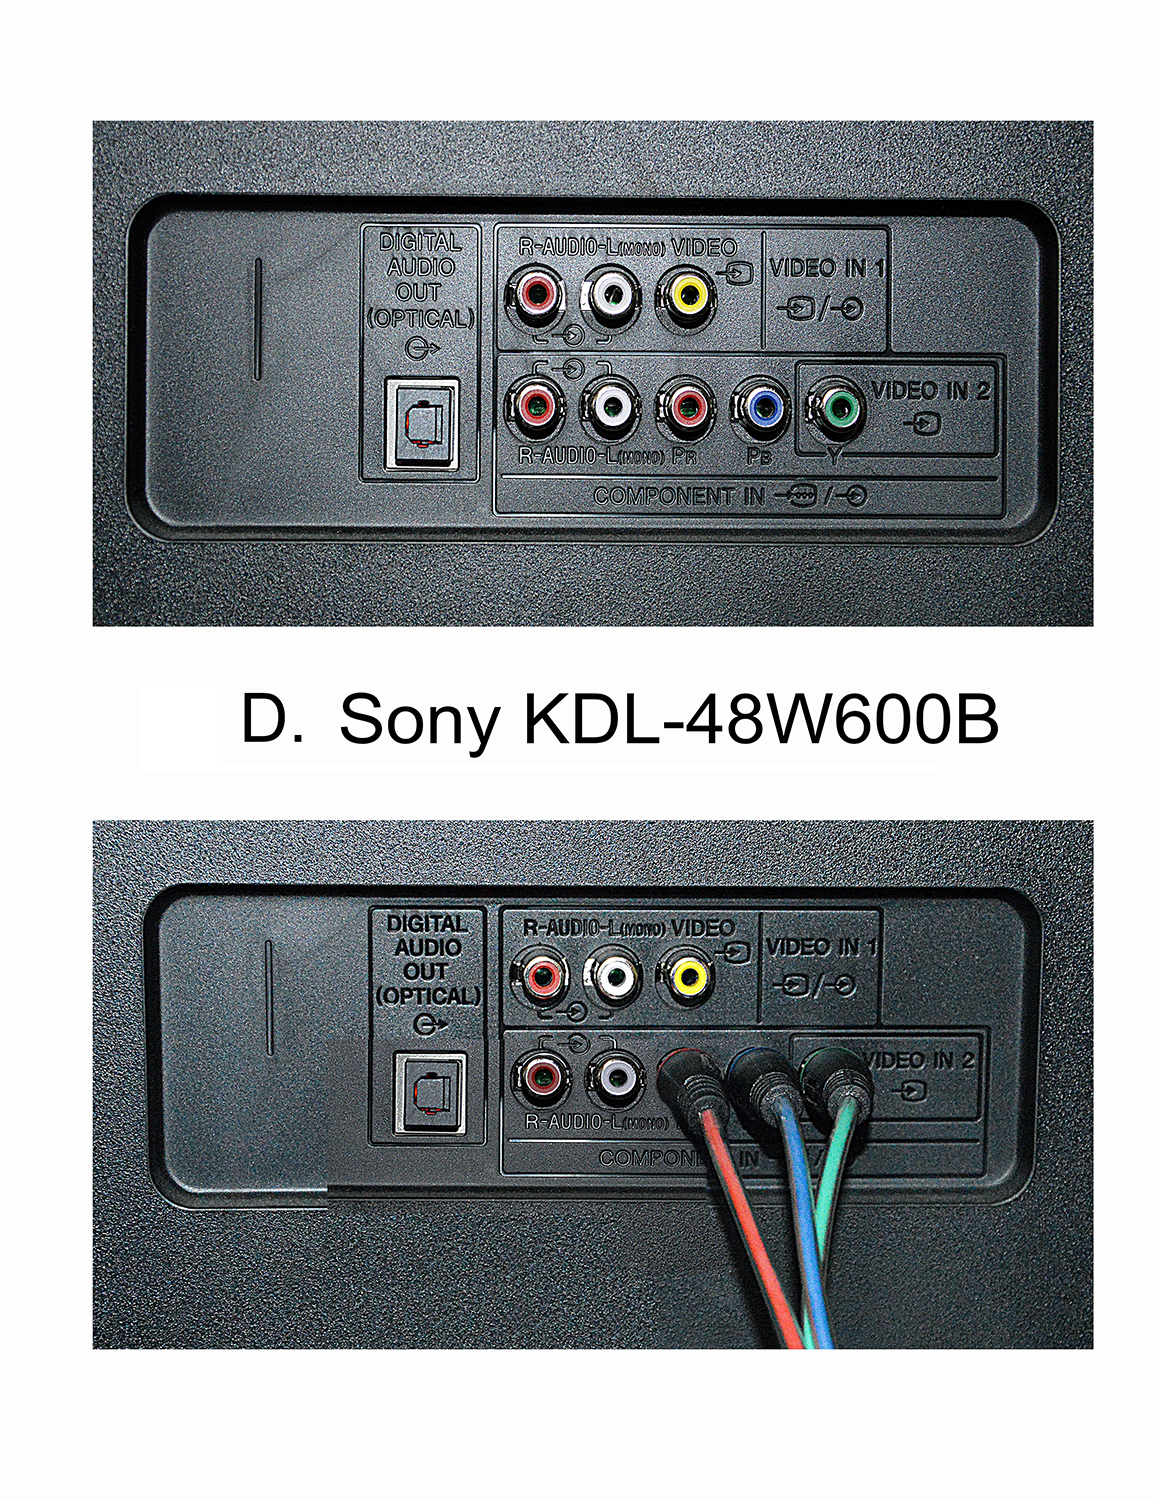 4. Sony TV Composite.jpg